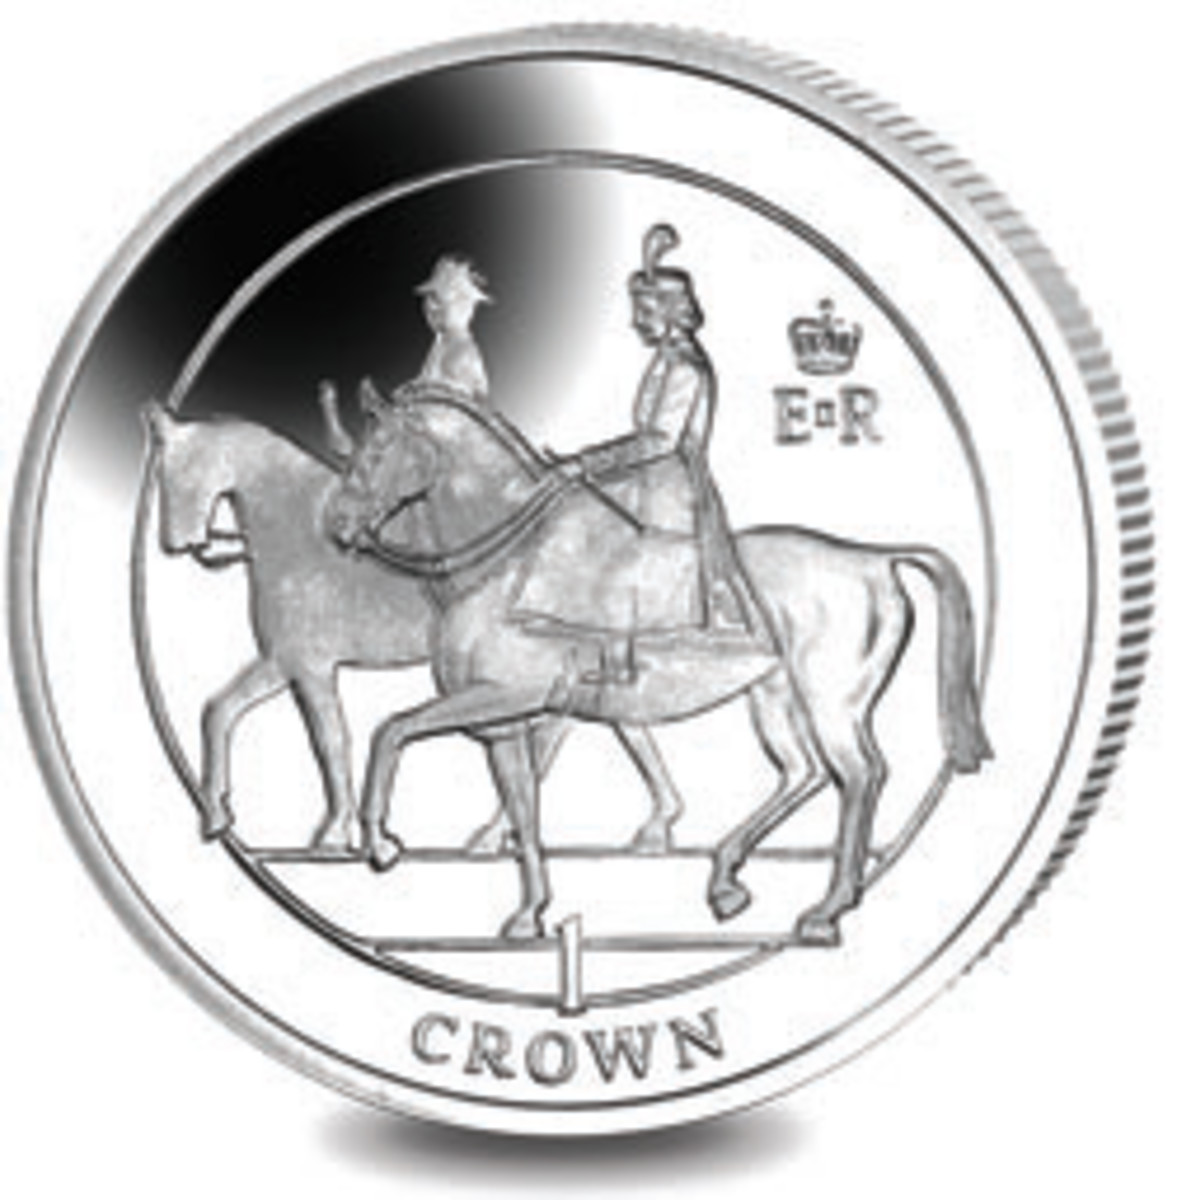 Tribute coin from Ascension Island (one crown). (Image courtesy Pobjoy Mint)